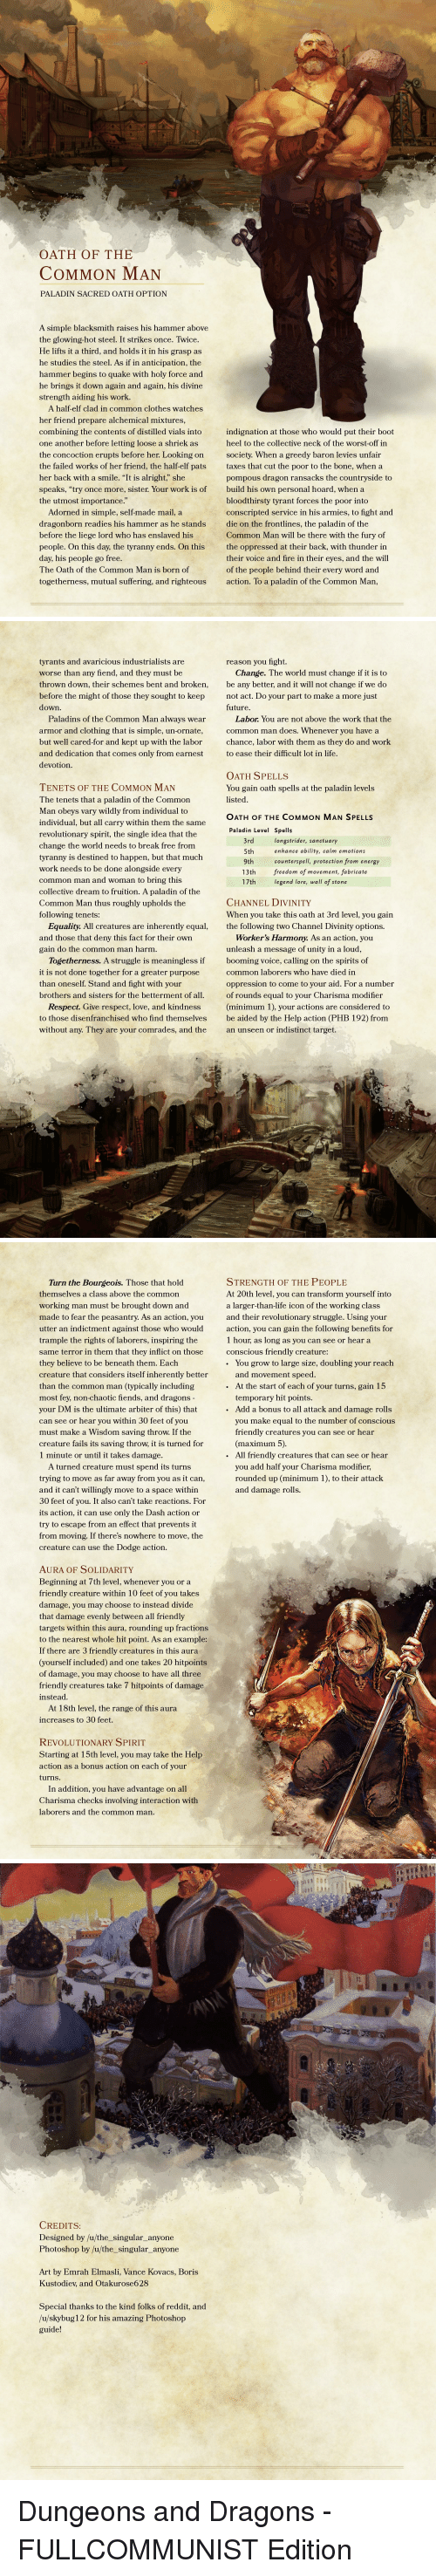 OATH OF THE COMMON MAN PALADIN SACRED OATH OPTION a Simple